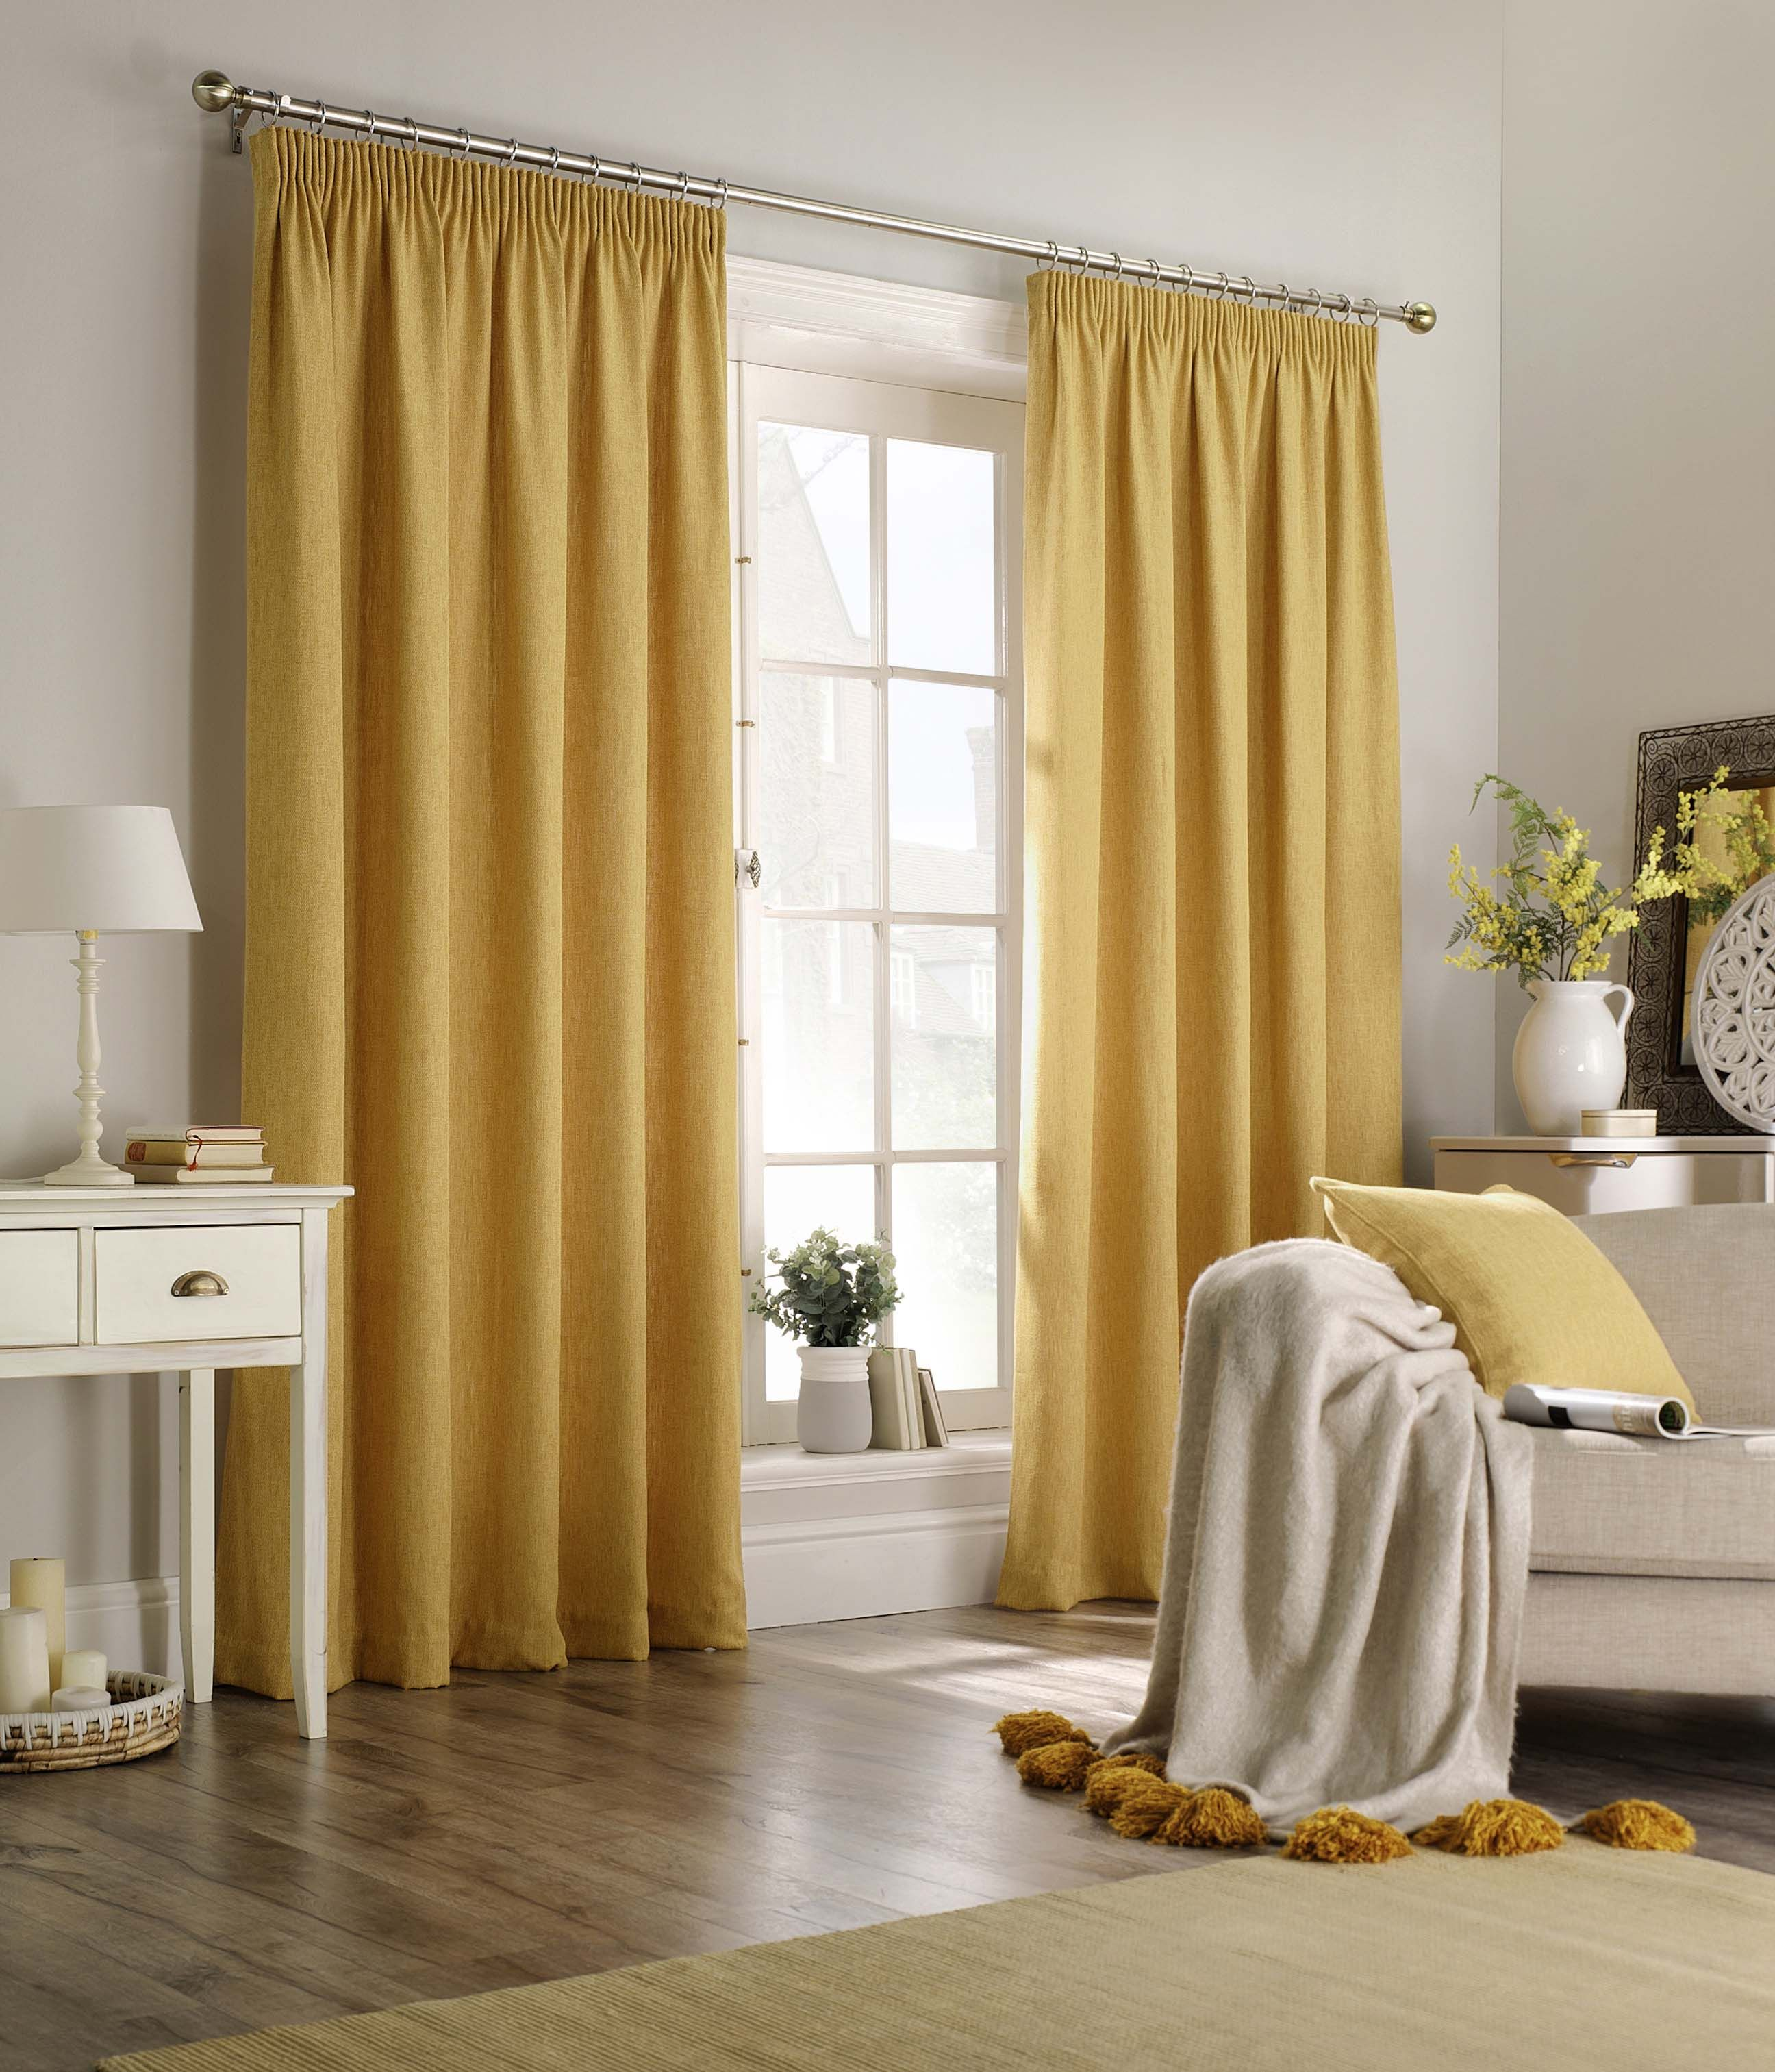 Harrison Herringbone Pencil Pleat Curtains in Ochre